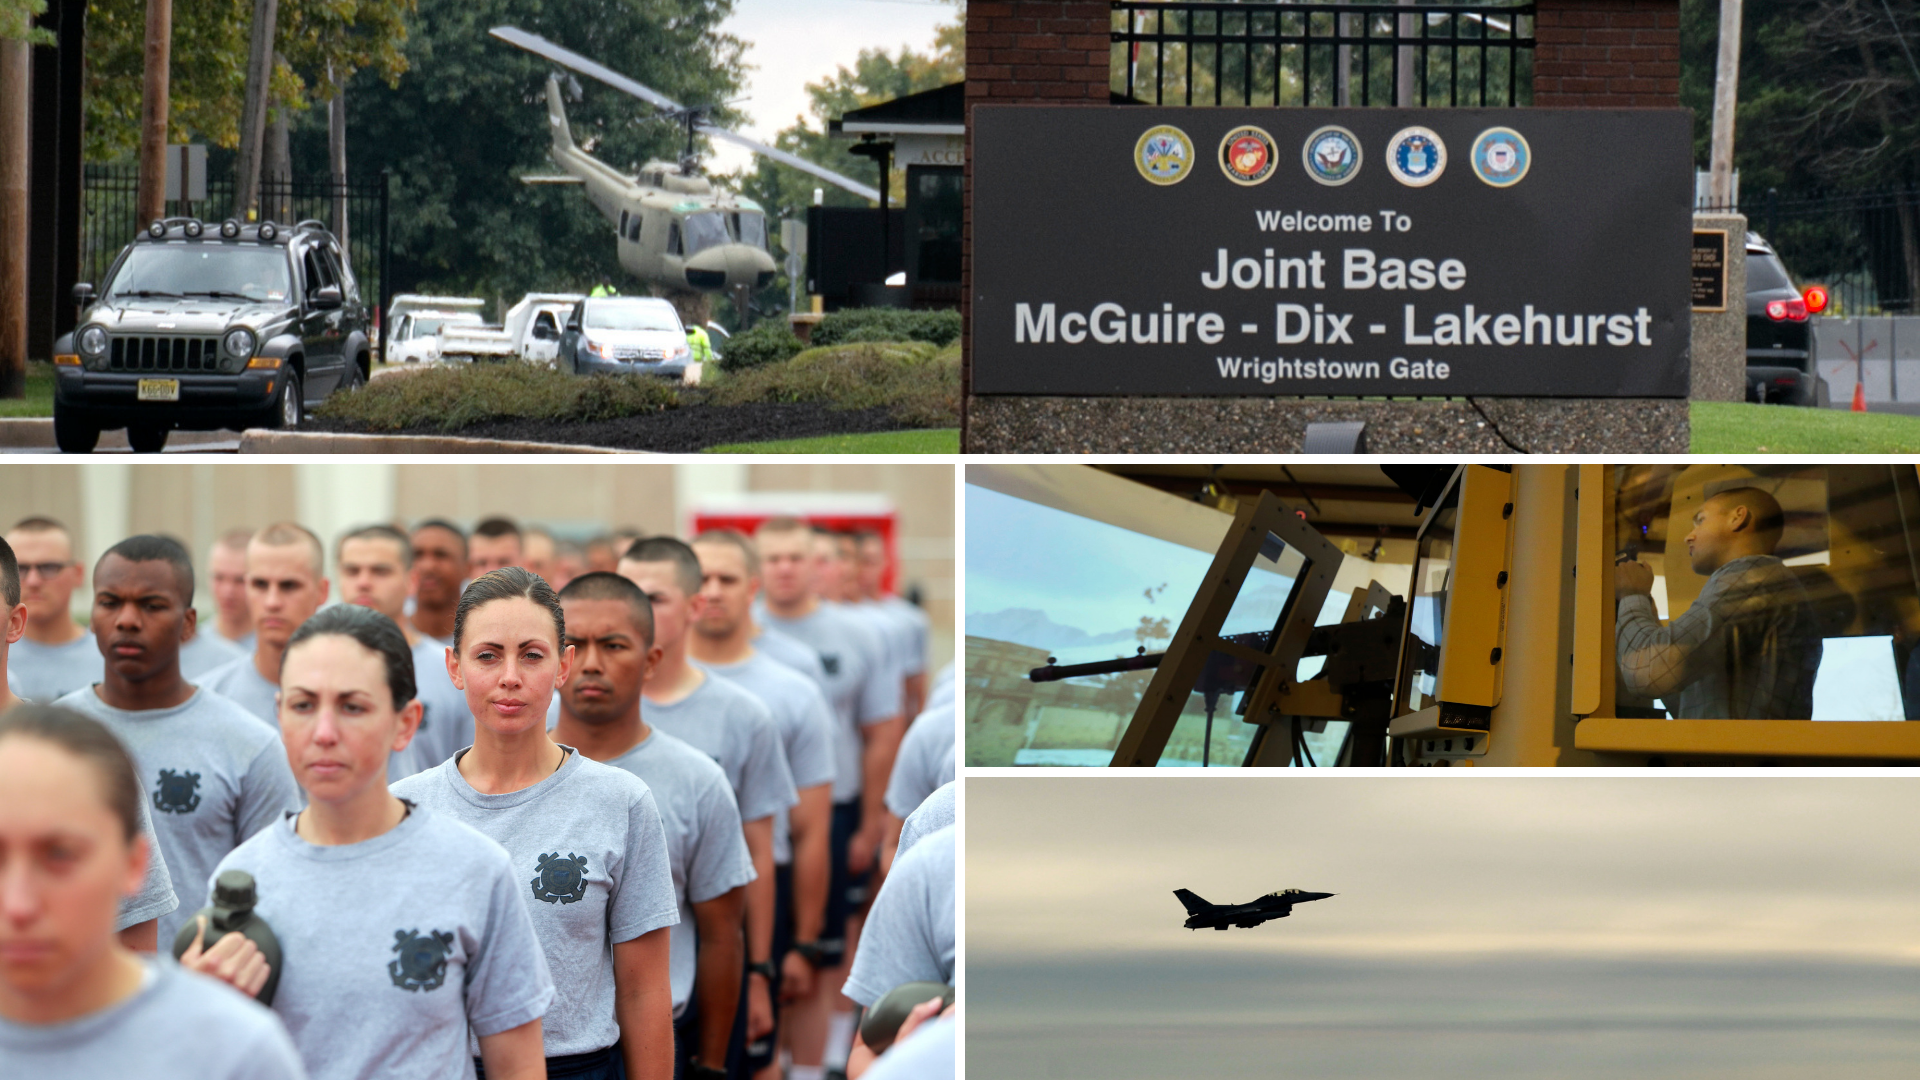 Murphy and Norcross: We must continue to invest in N.J.'s military installations